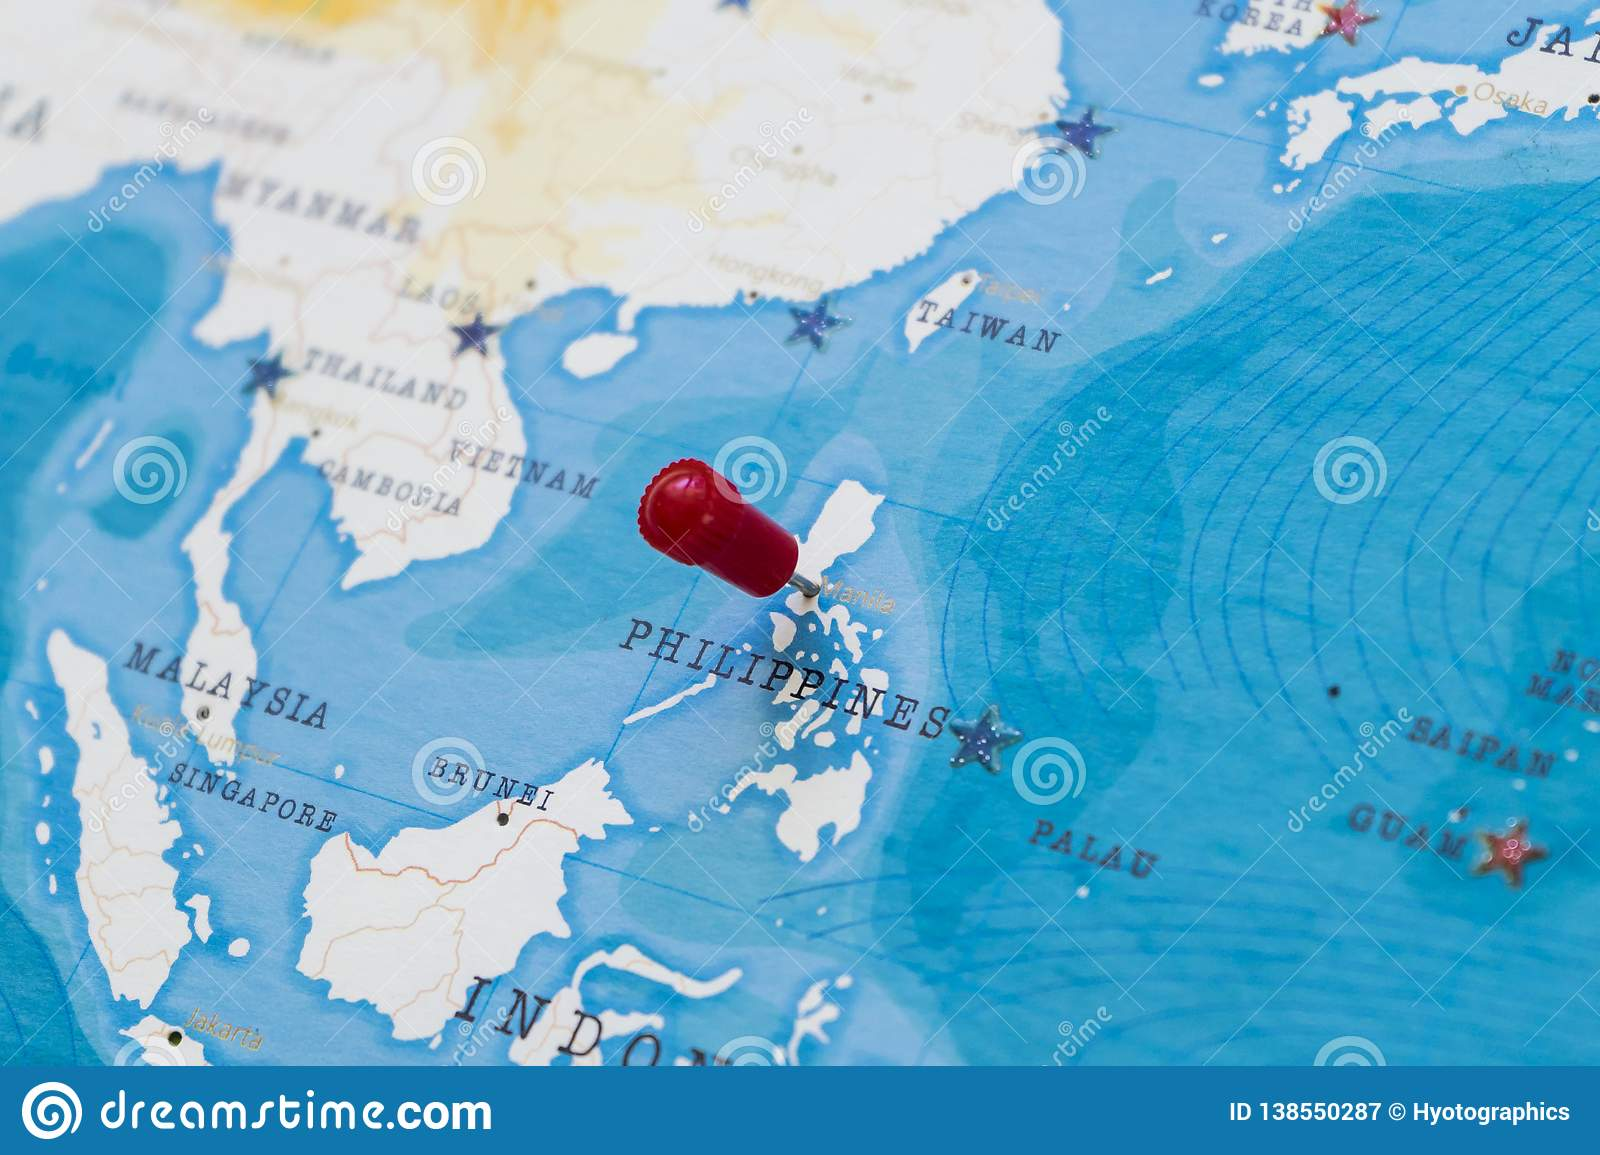 Picture of: A Pin On Manila Philippines In The World Map Stock Image Image Of Government Locations 138550287